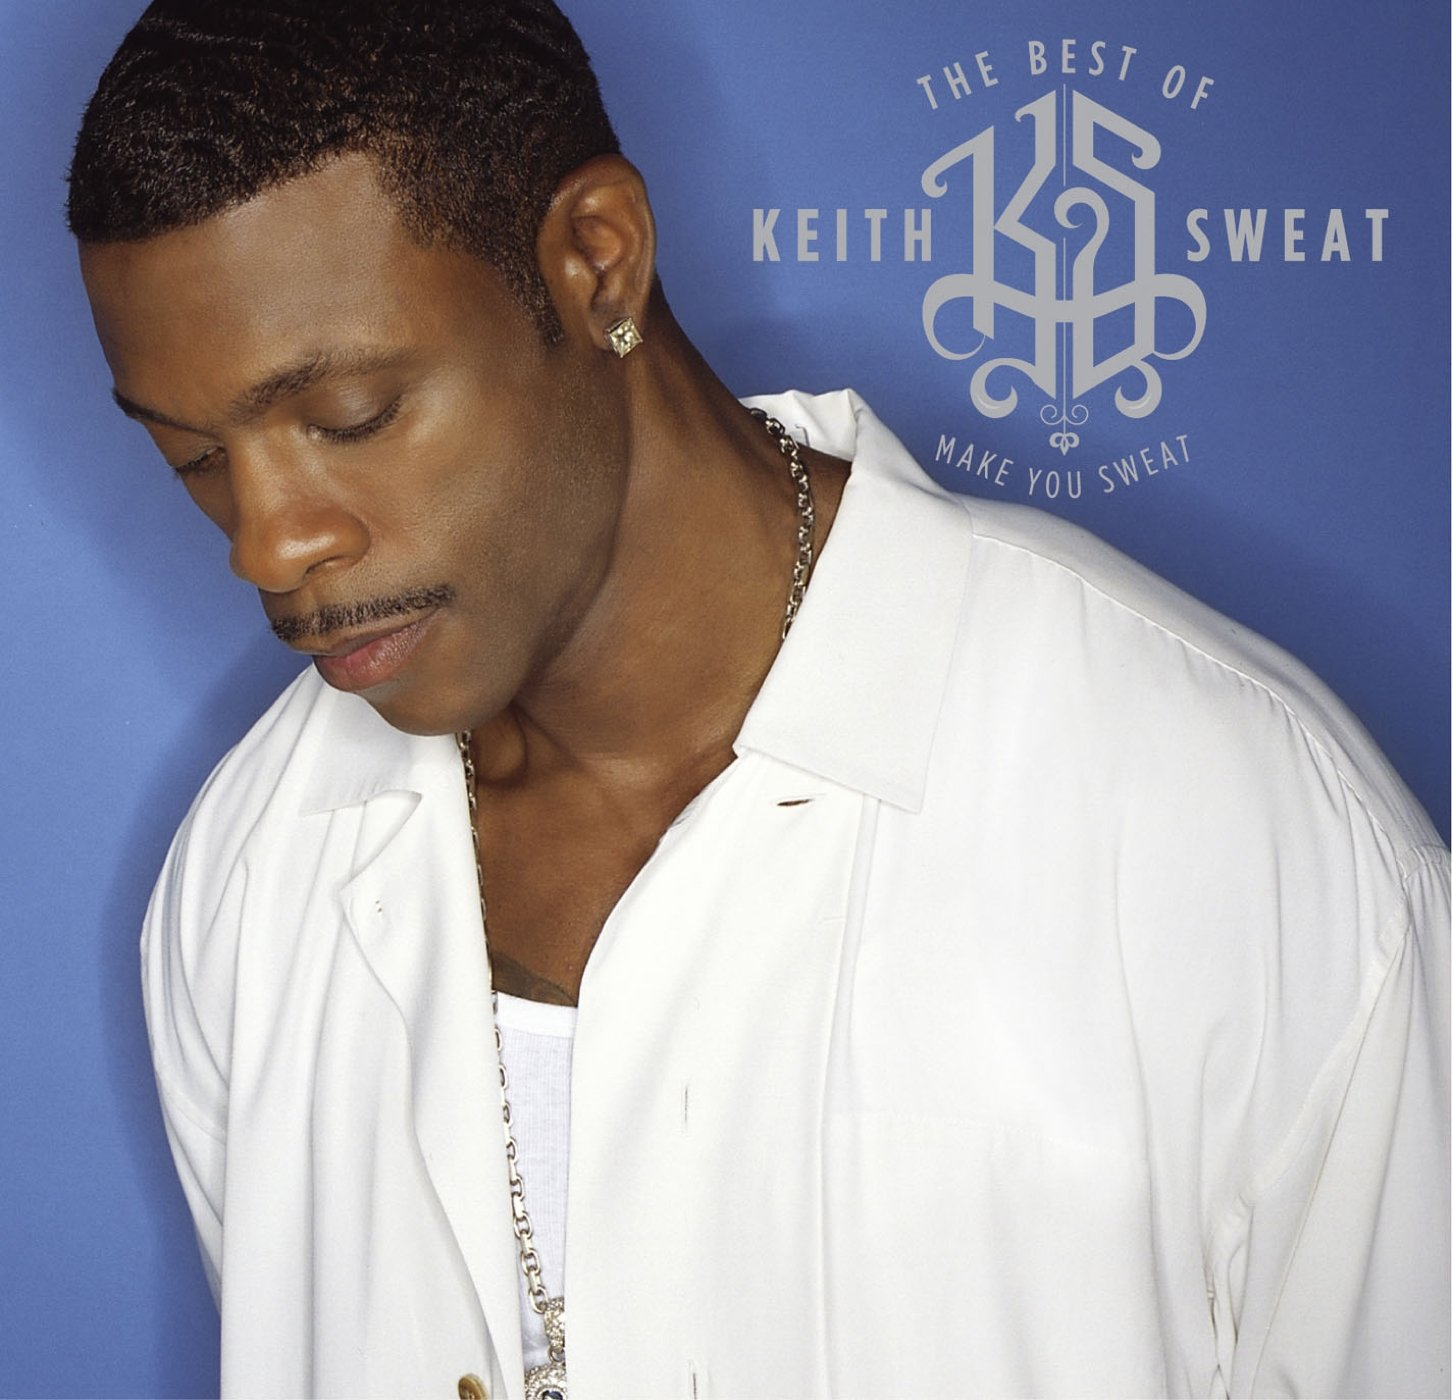 Best Of Keith Sweat, The: Make You Sweat